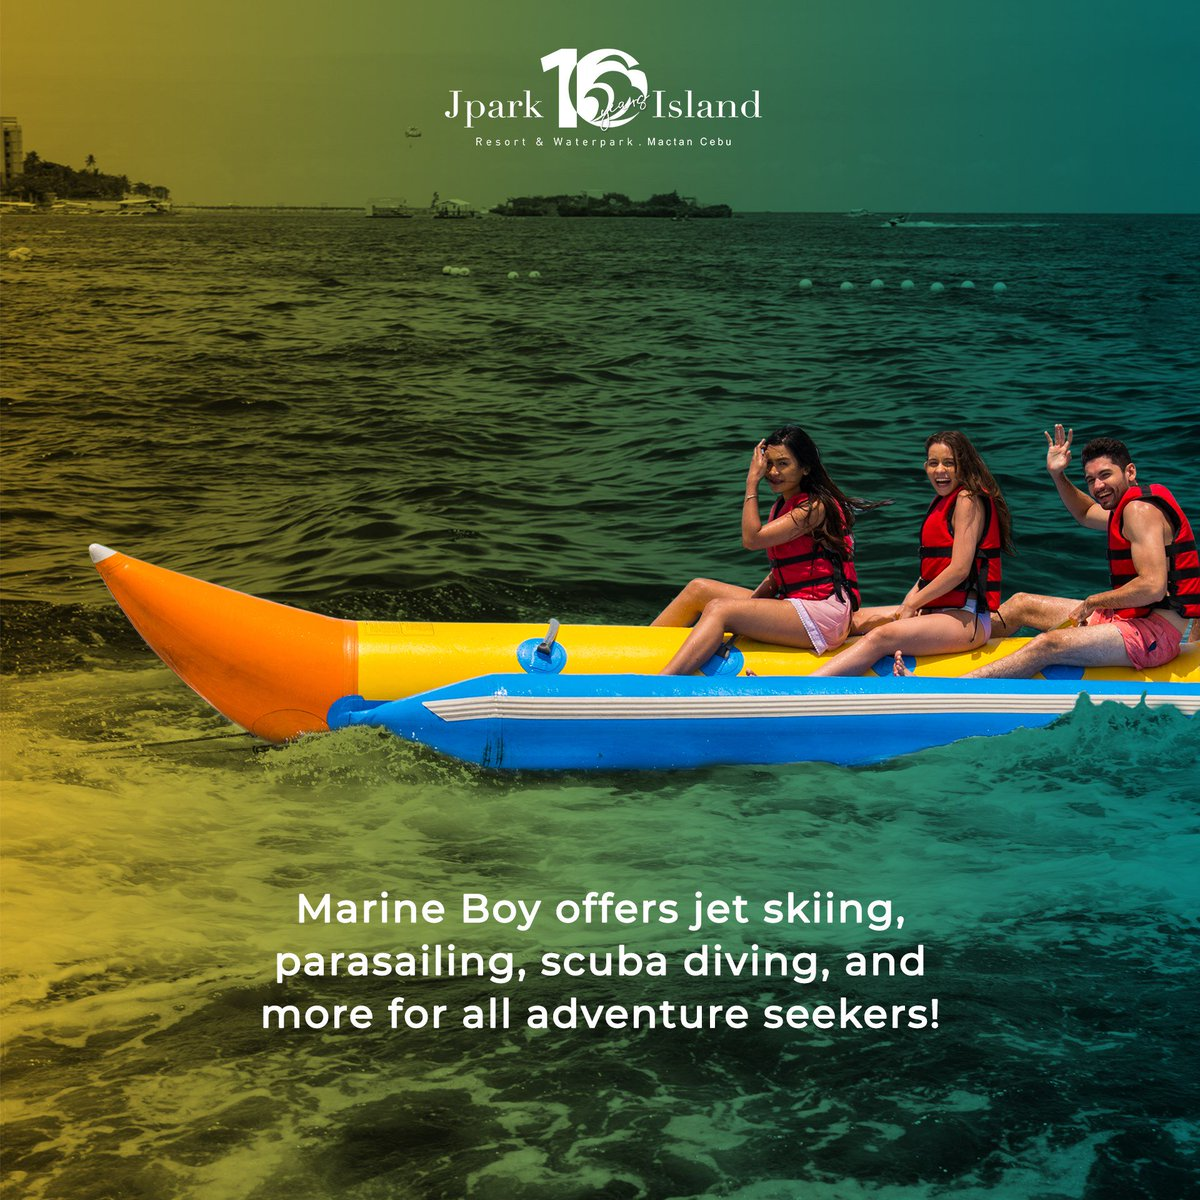 Slide and dive into a new week with adventure-filled memories brought to you by Marine Boy!   Know more here at https://t.co/HjA4UQSTAq   #MyJparkStory #WaterYouWaitingFor  #TenYearsOfJpark https://t.co/KUv4IaobRI